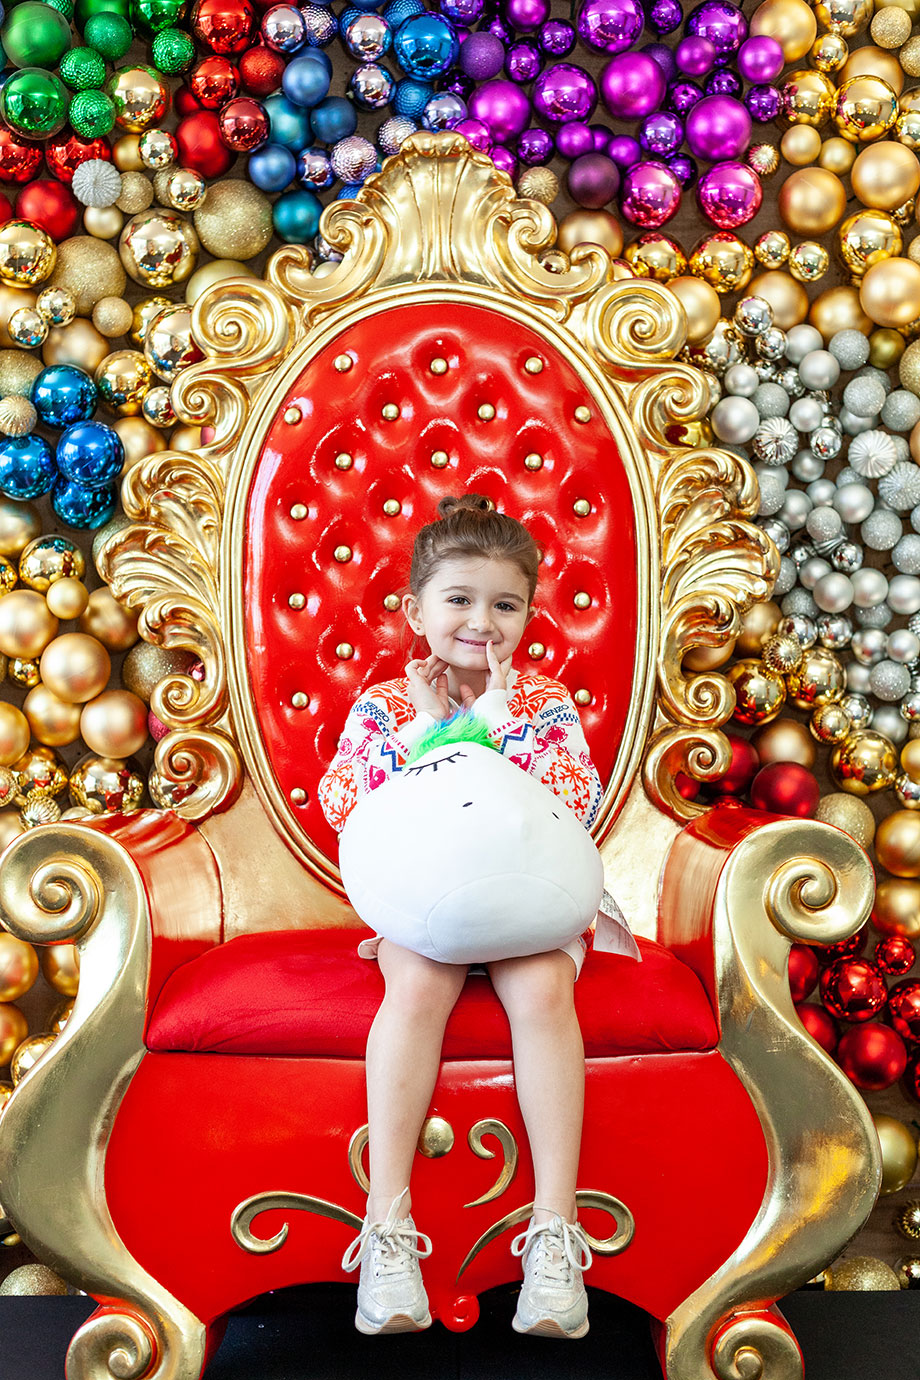 Zelda sits in Santa's chair on Christmas morning in the Swissotel.